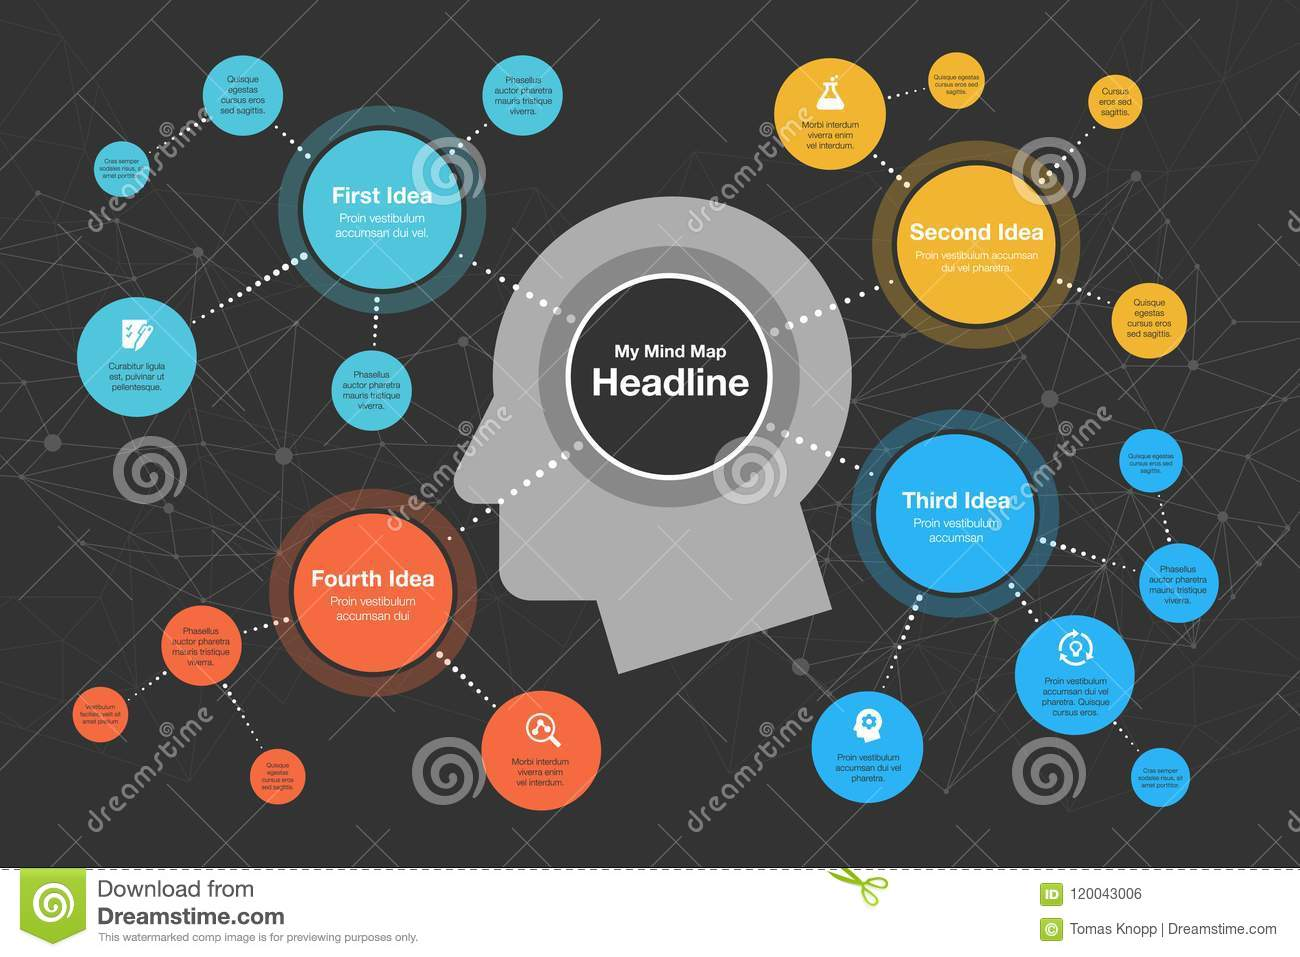 Graphic Design Muur : Infographic for mind map visualization template stock illustration